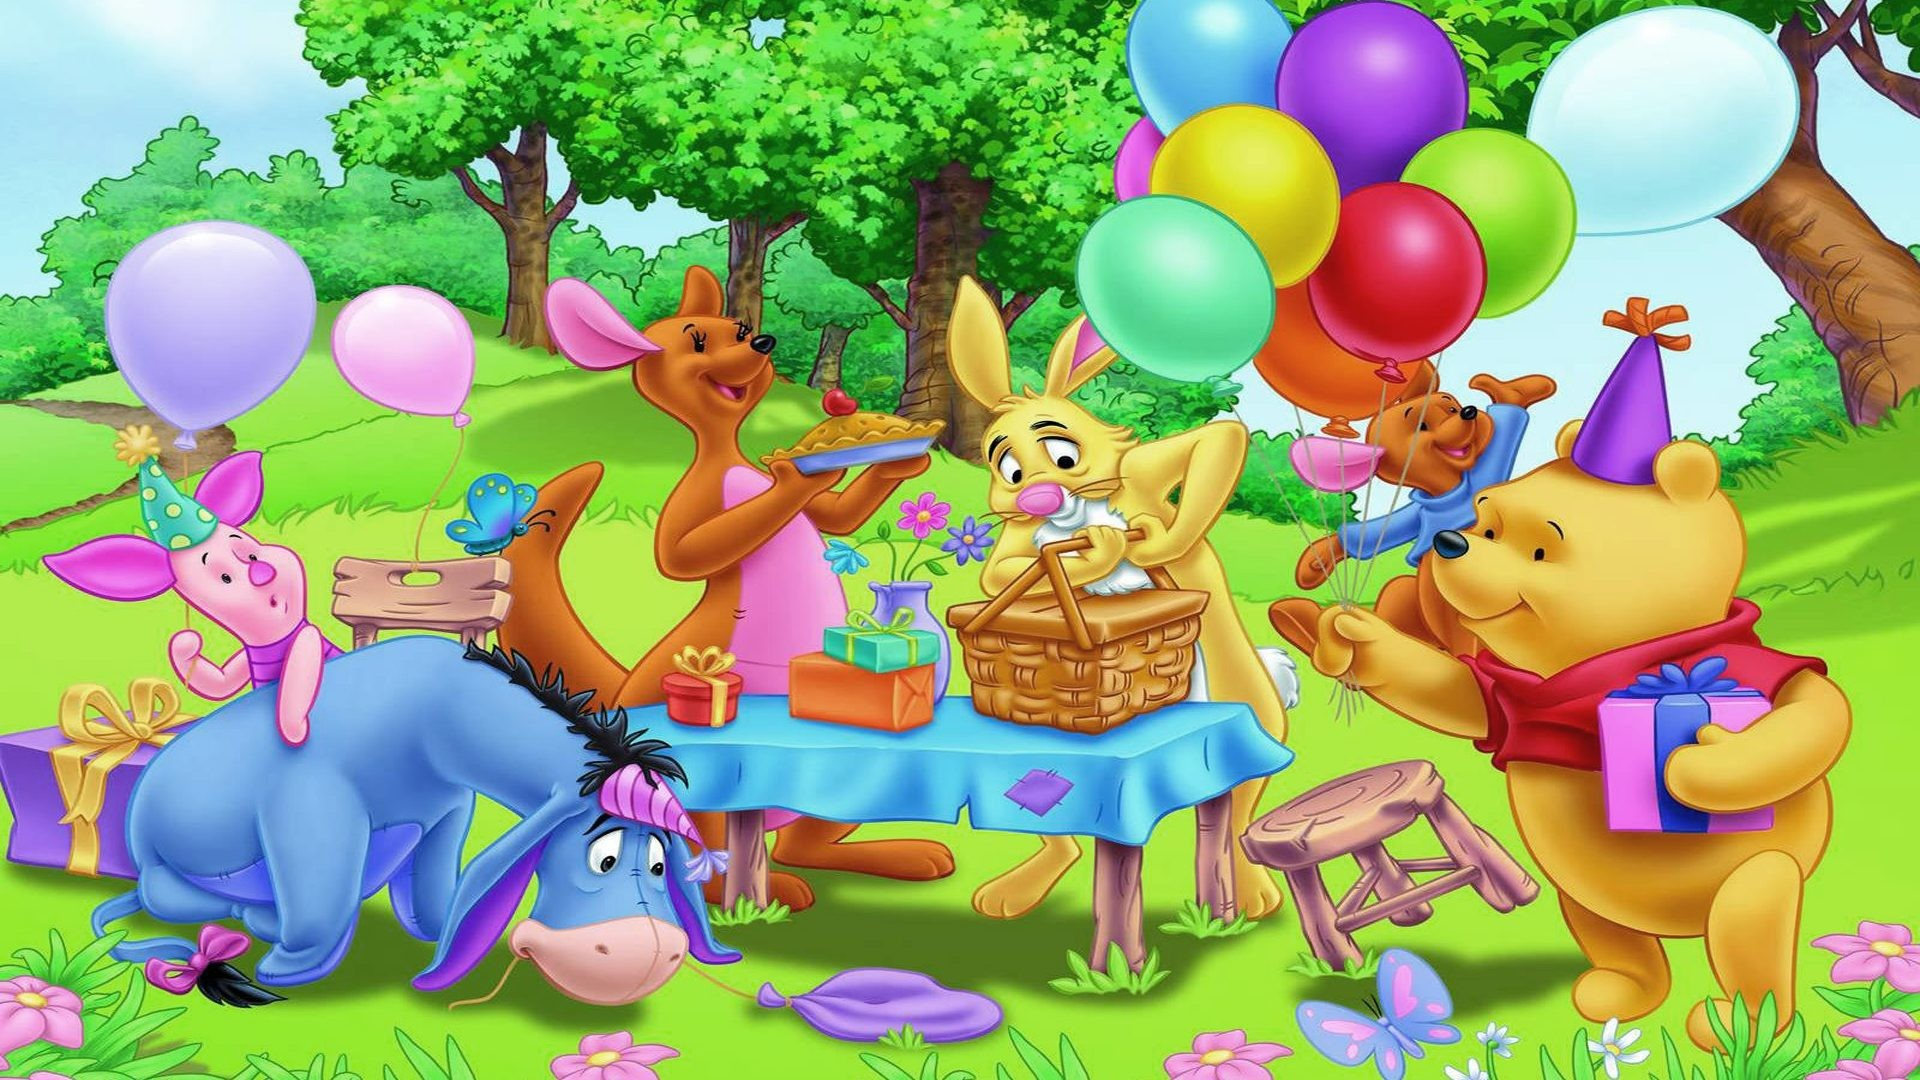 And Friends Gifts Balloons Hd Wallpaper 1920×1200 : Wallpapers13.com …